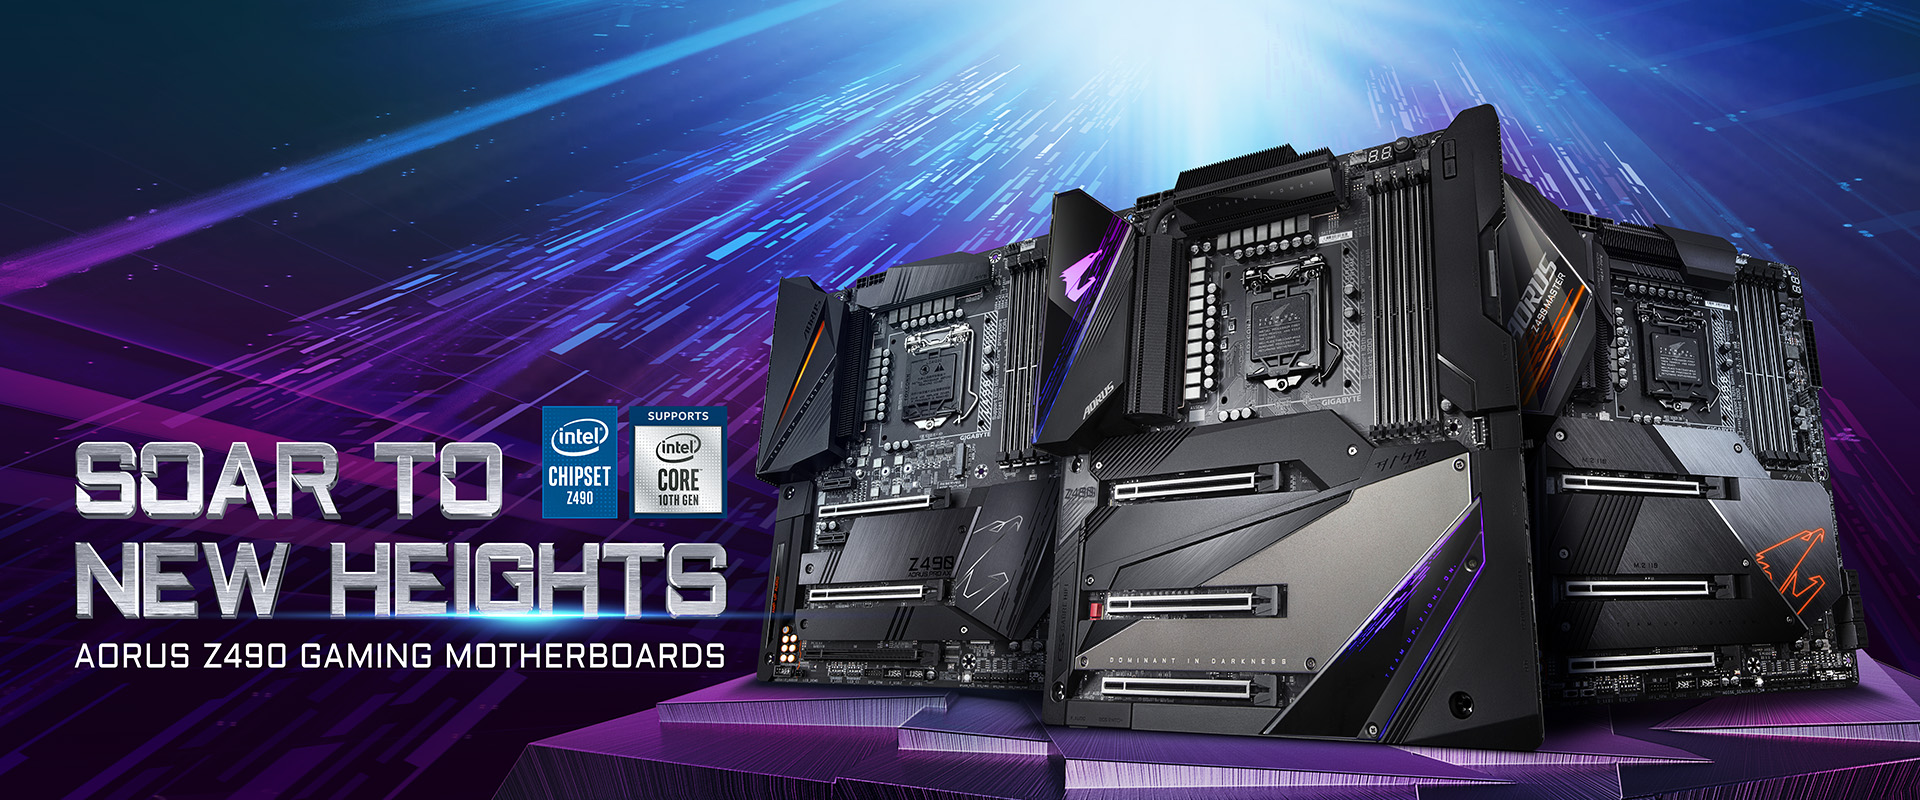 different motherboards